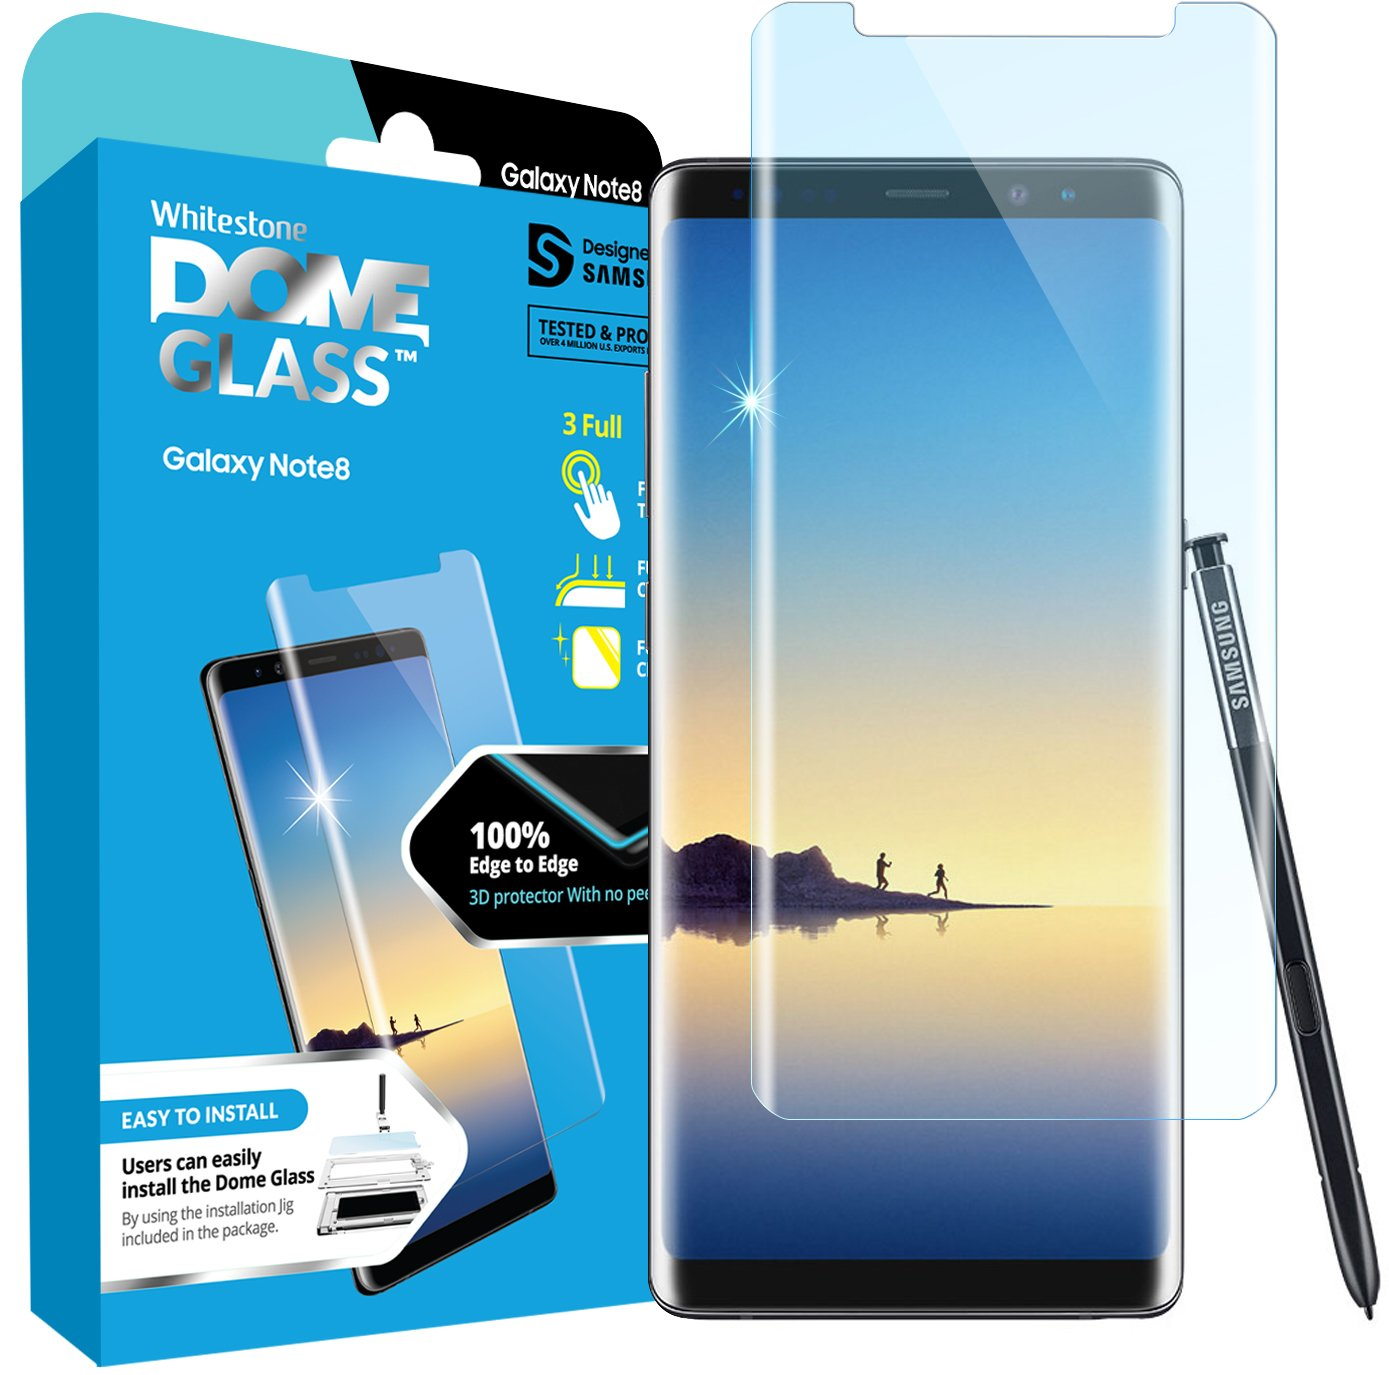 Dome Glass Galaxy Note 8 Screen Protector Tempered Glass Shield, [Liquid Dispersion Tech] 3D Curved Full Coverage, Easy Install Kit and UV Light for Samsung Galaxy Note 8 (Replacement Only) by Dome Glass